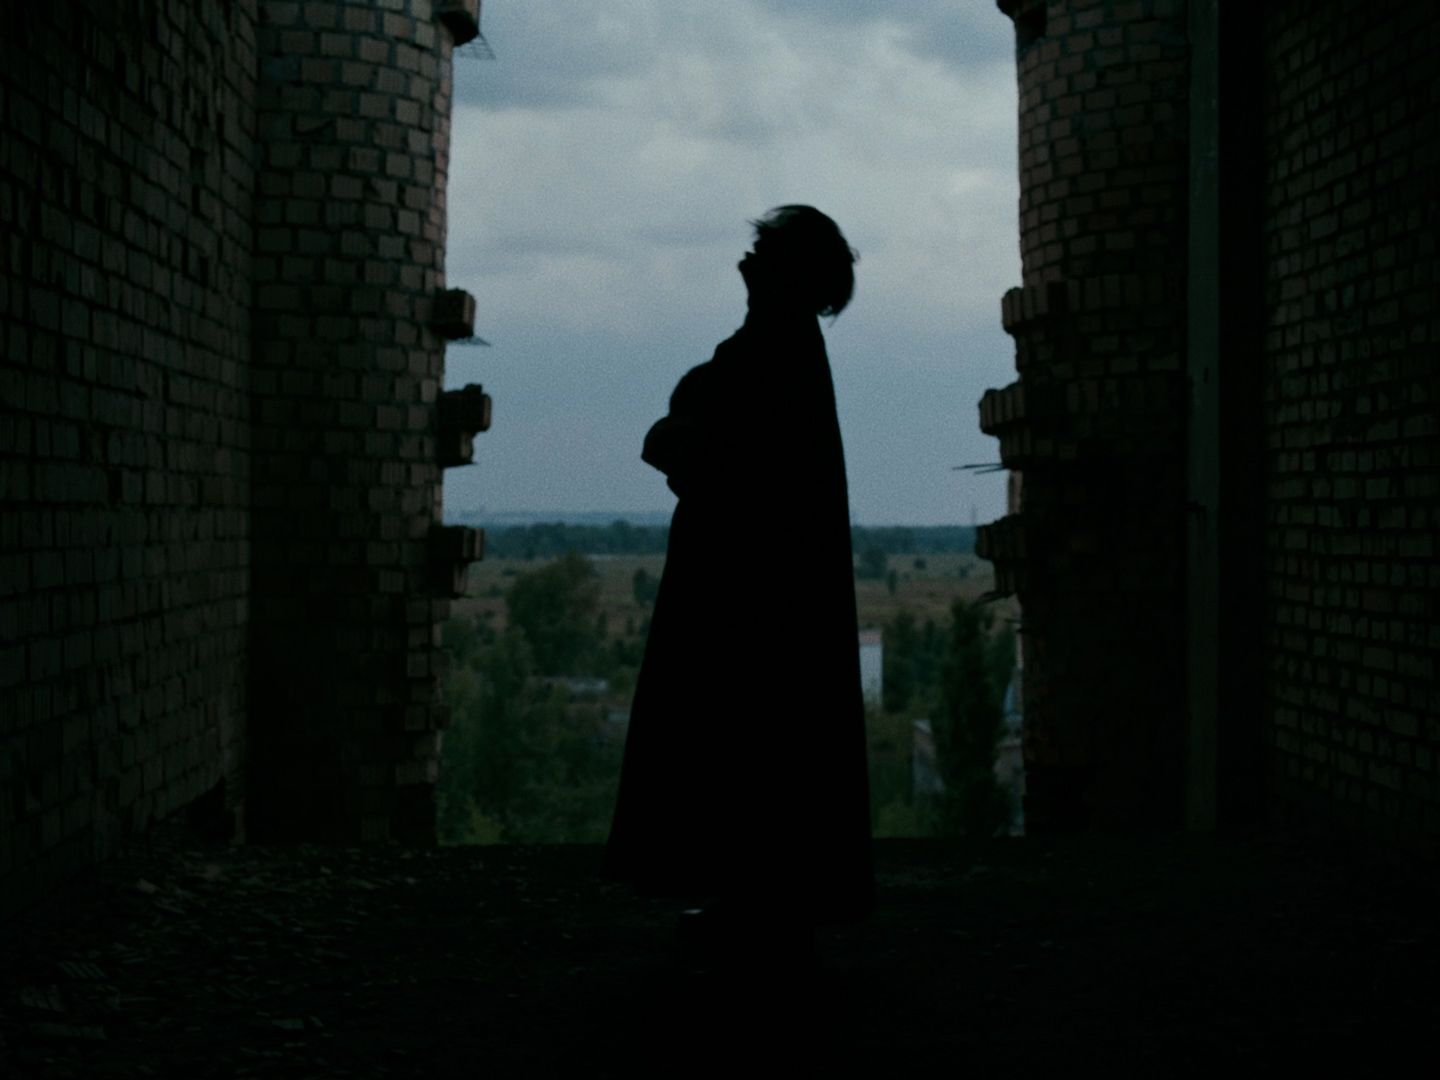 Apashe's silhouette in an abandonned building in Ukraine